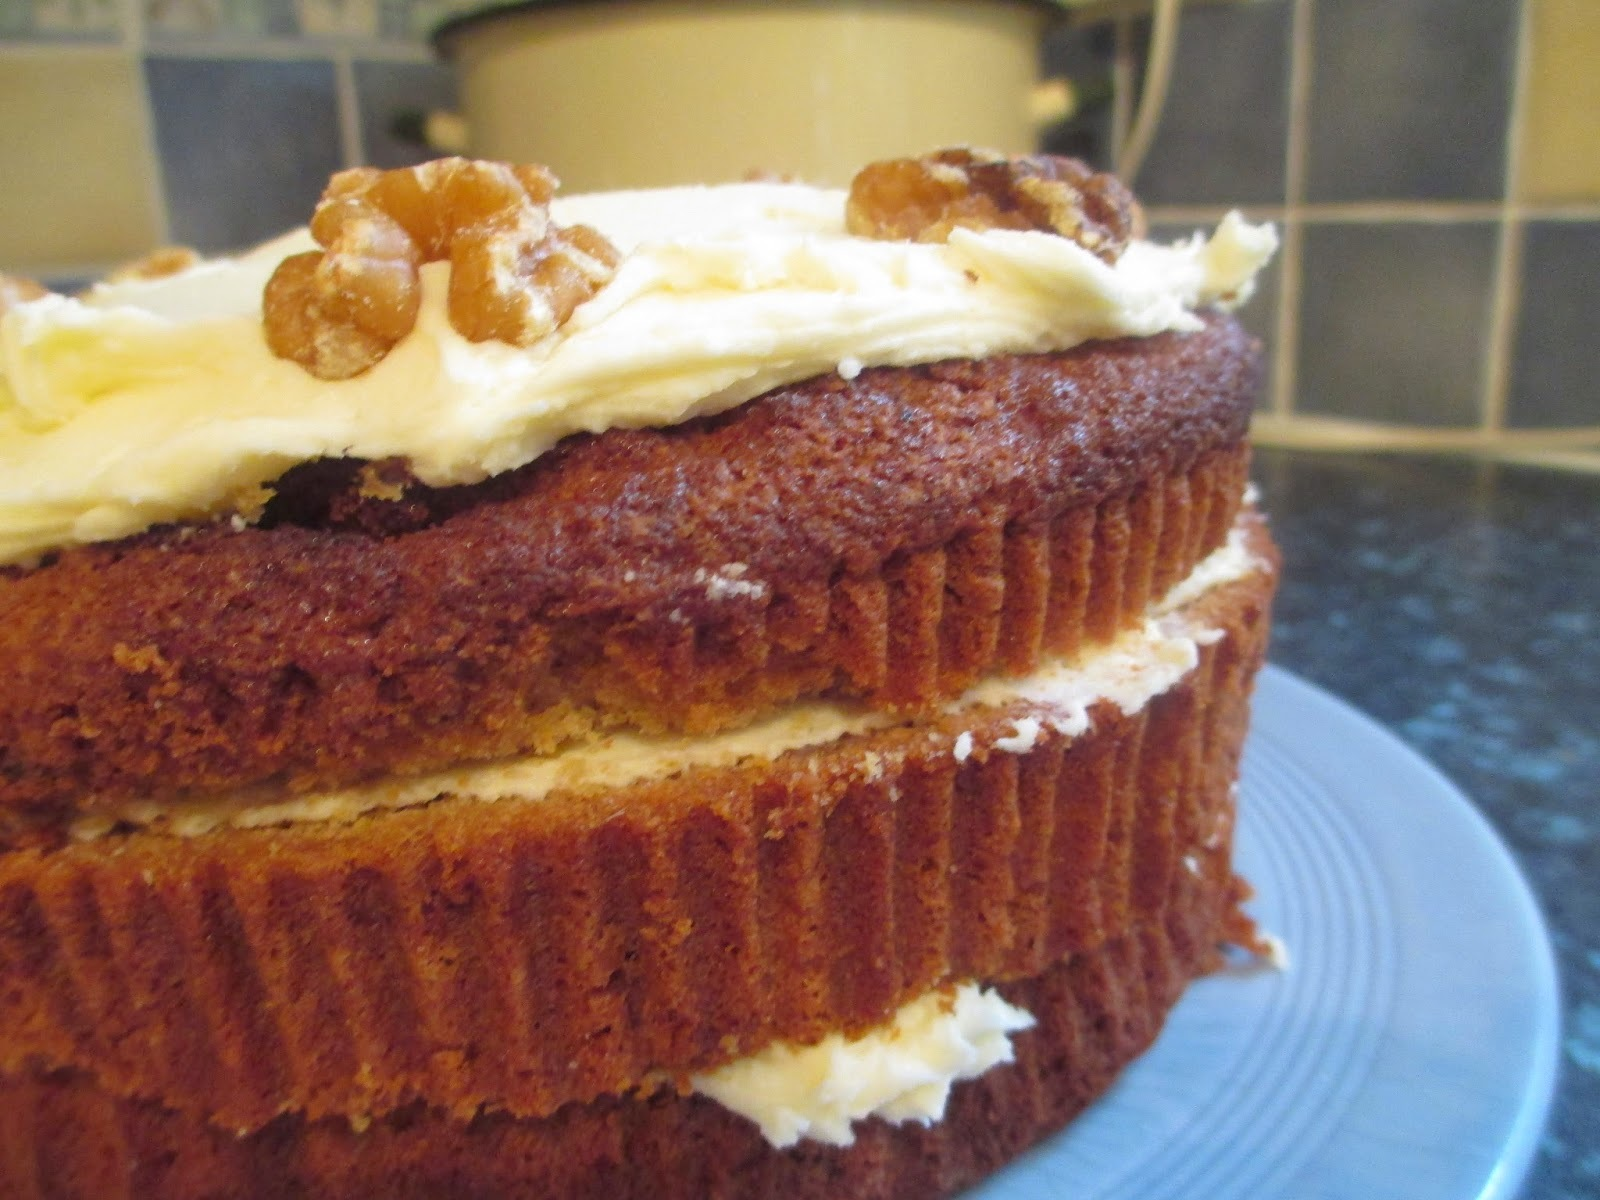 Maple Syrup and Walnut cake